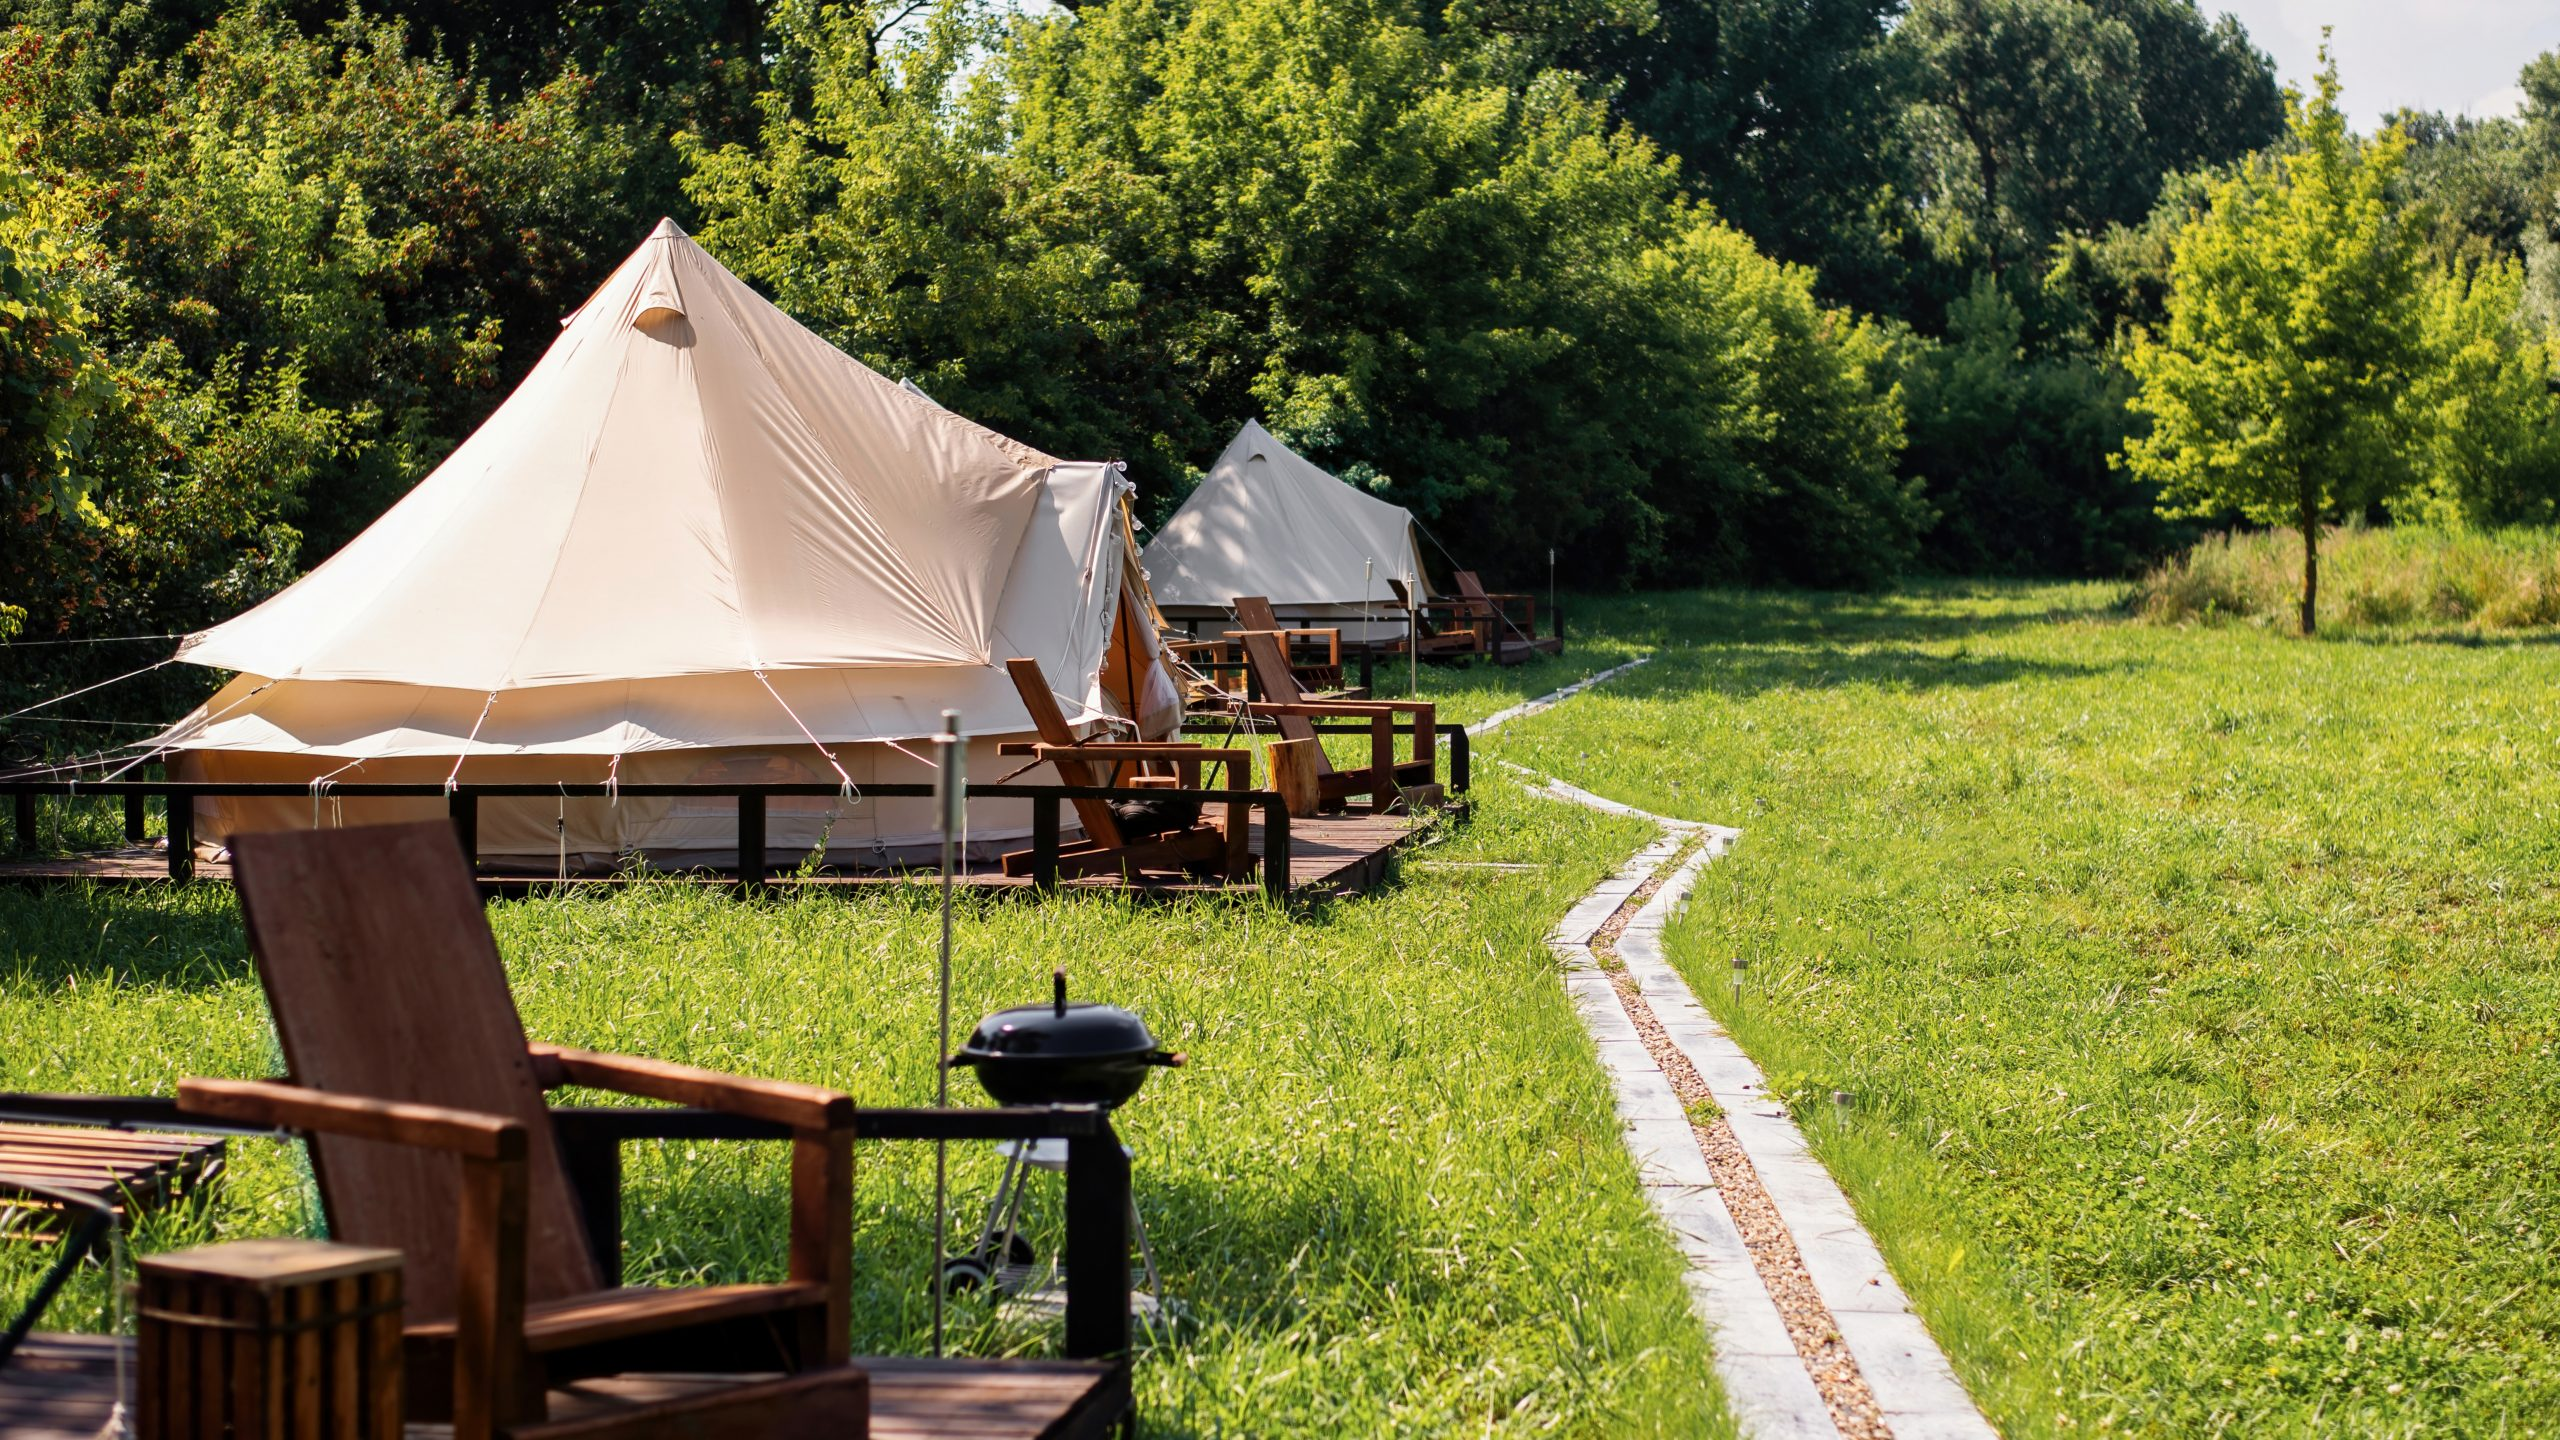 tents-with-wooden-chairs-pathway-front-them-glamping-nature-greenery-around-scaled.jpg